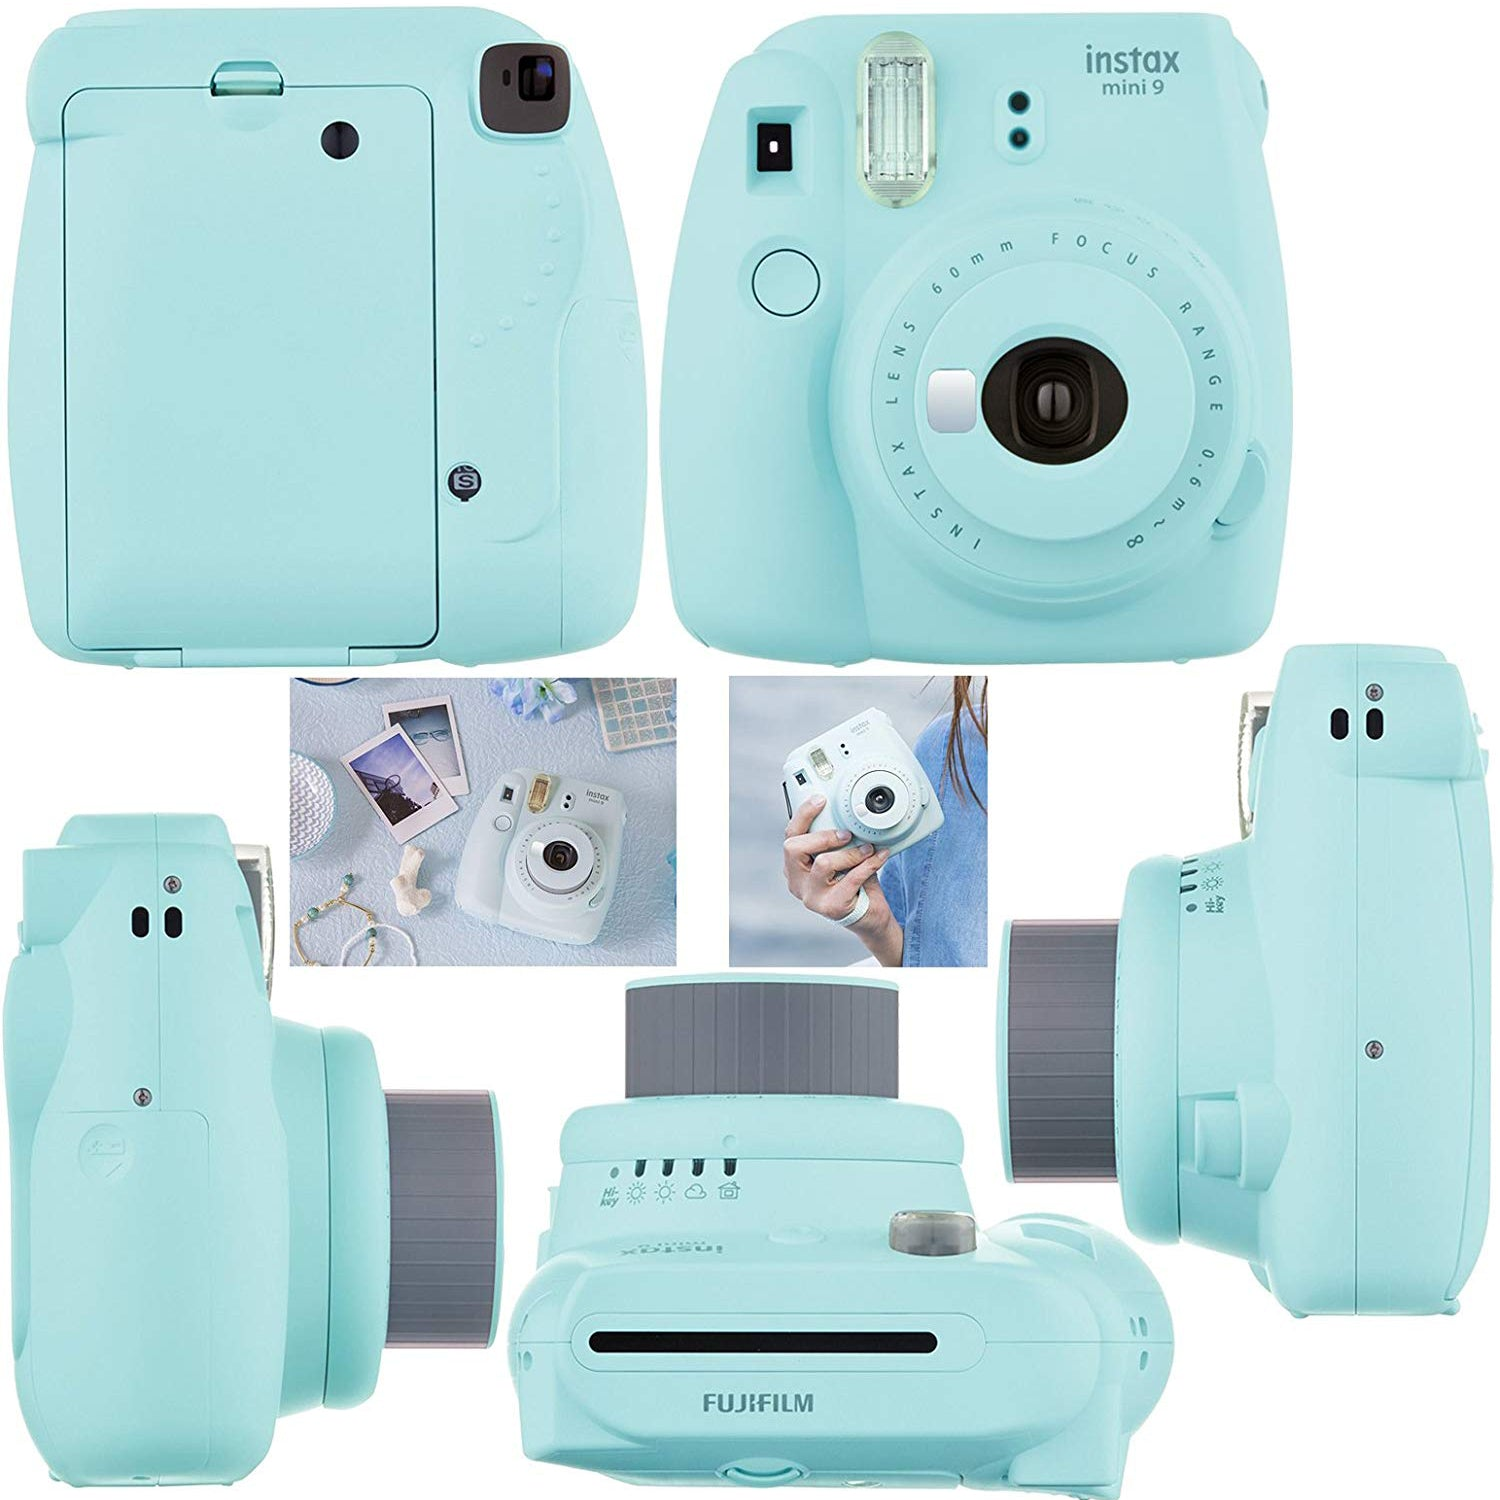 """Fujifilm Instax Mini 9 Instant Camera (Ice Blue) + Accessory Kit, Includes: INSTAX Mini Instant Film (20 pack) + 120 Assorted Sticker, Plastic & Paper Frames + Photo Album + 4 AA Batteries + MORE """